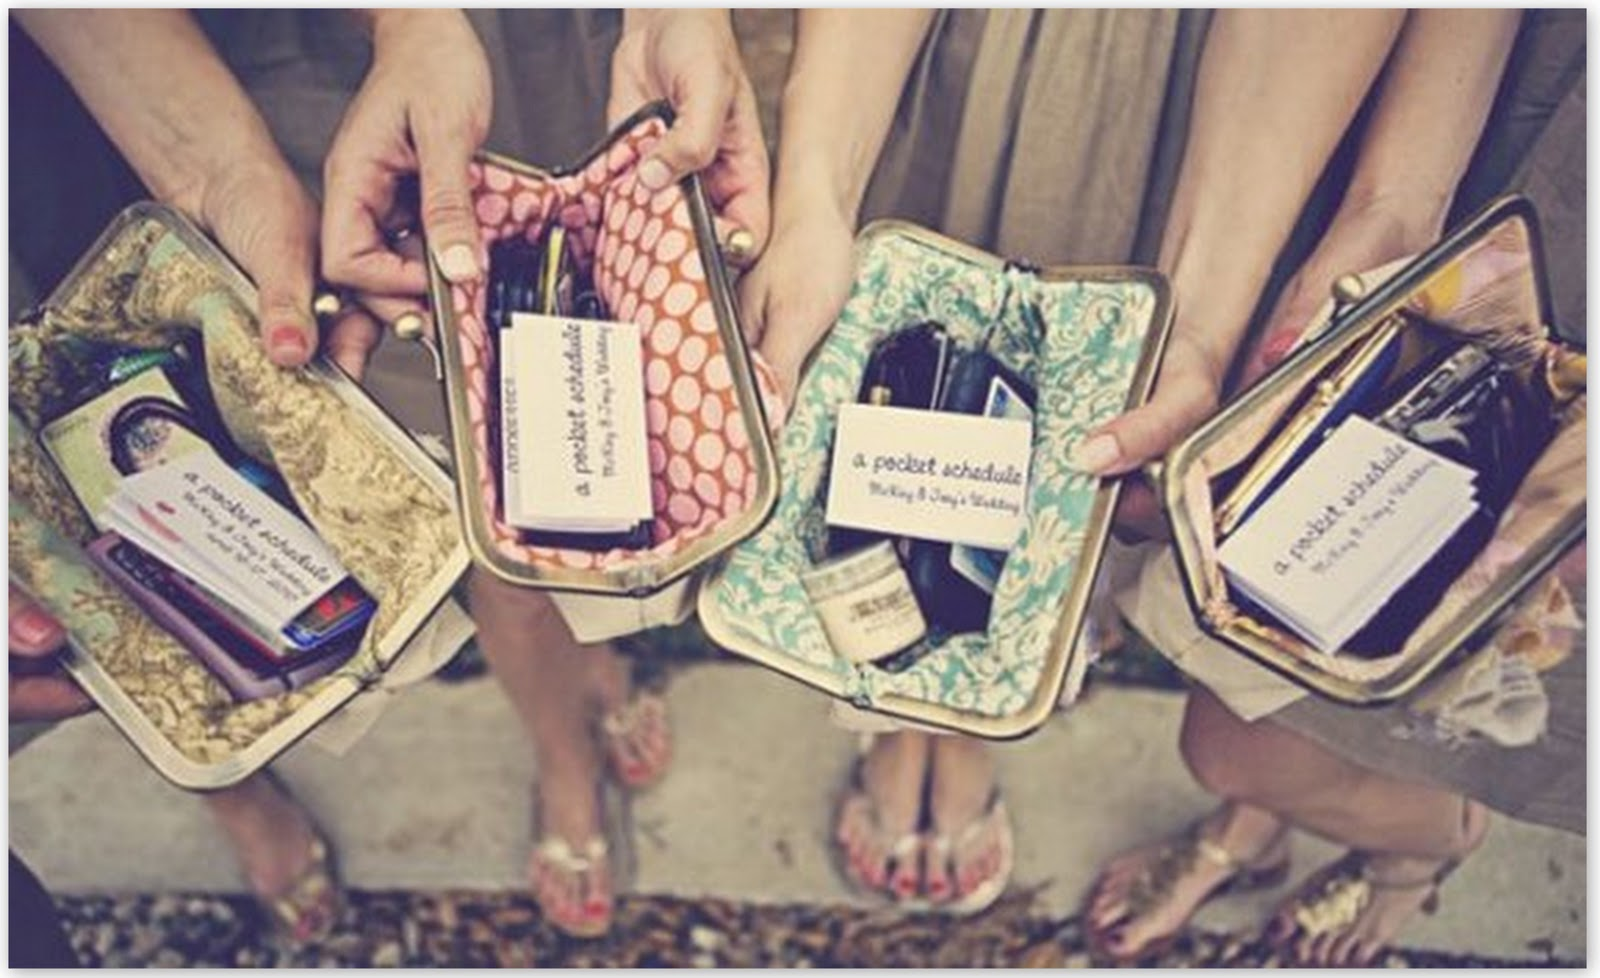 Bridesmaids Wedding Gifts: Cute Clutches For Your Bridesmaids